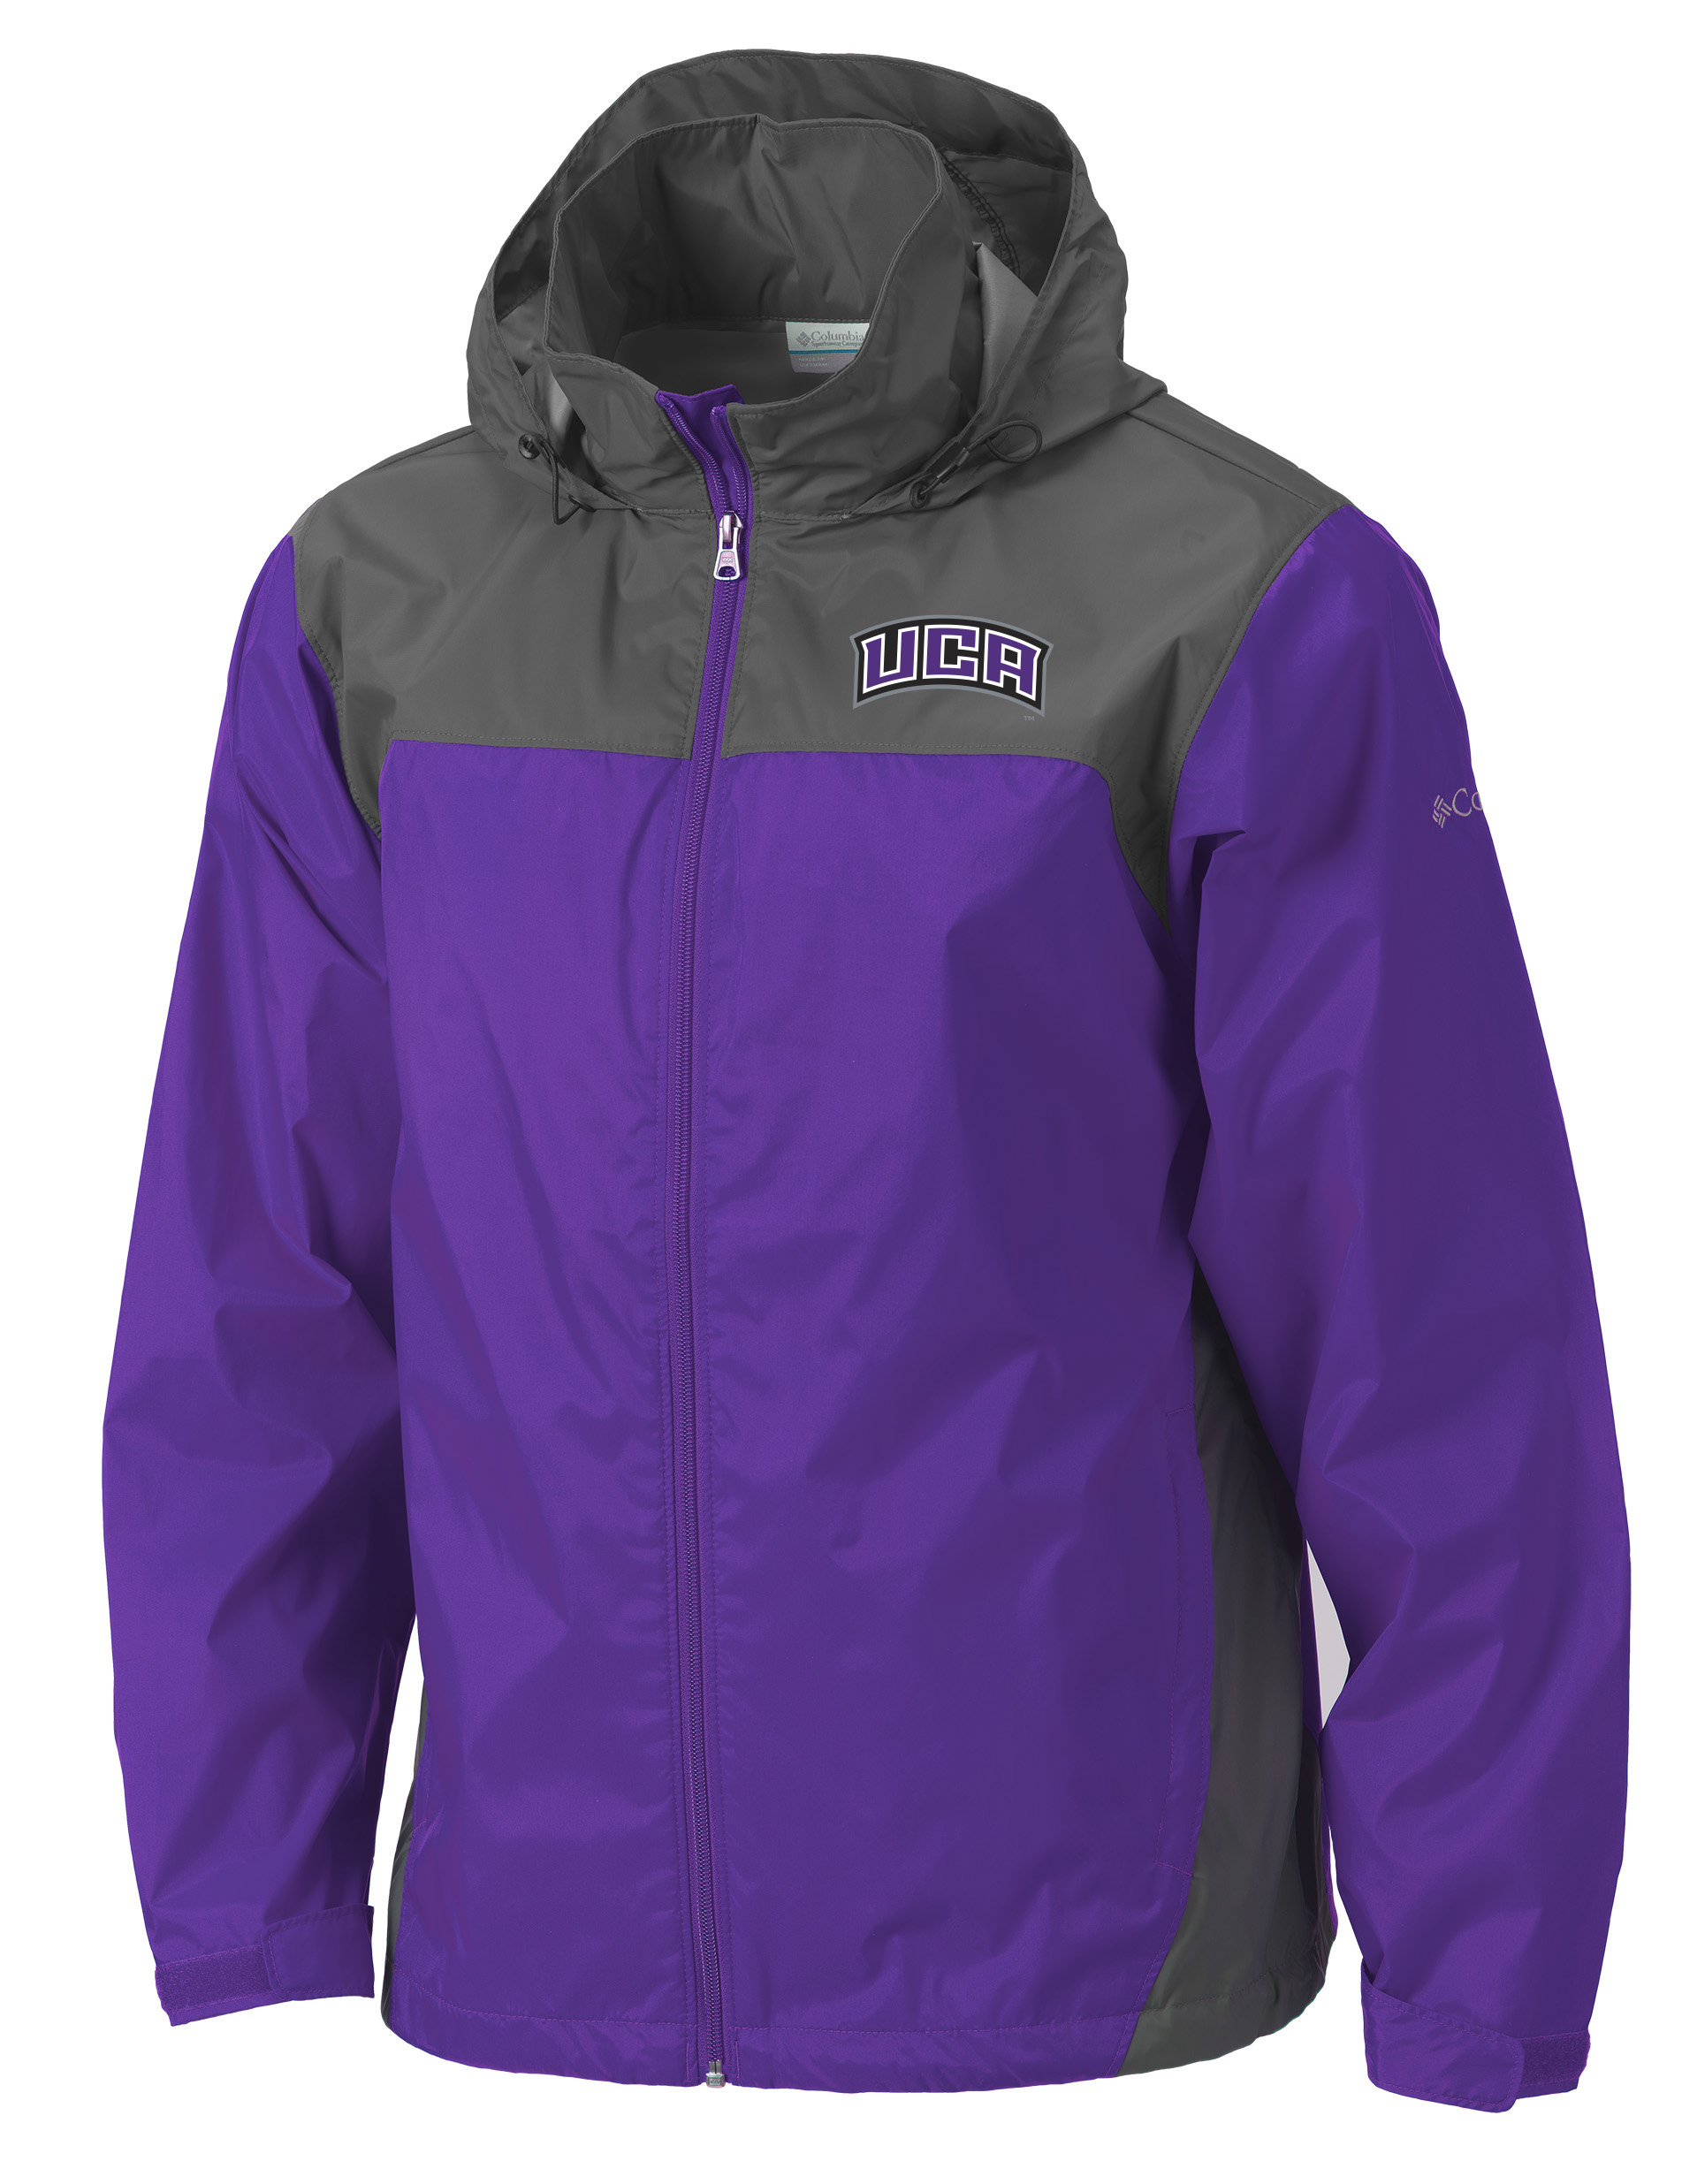 Glannaker Lake Windbreaker